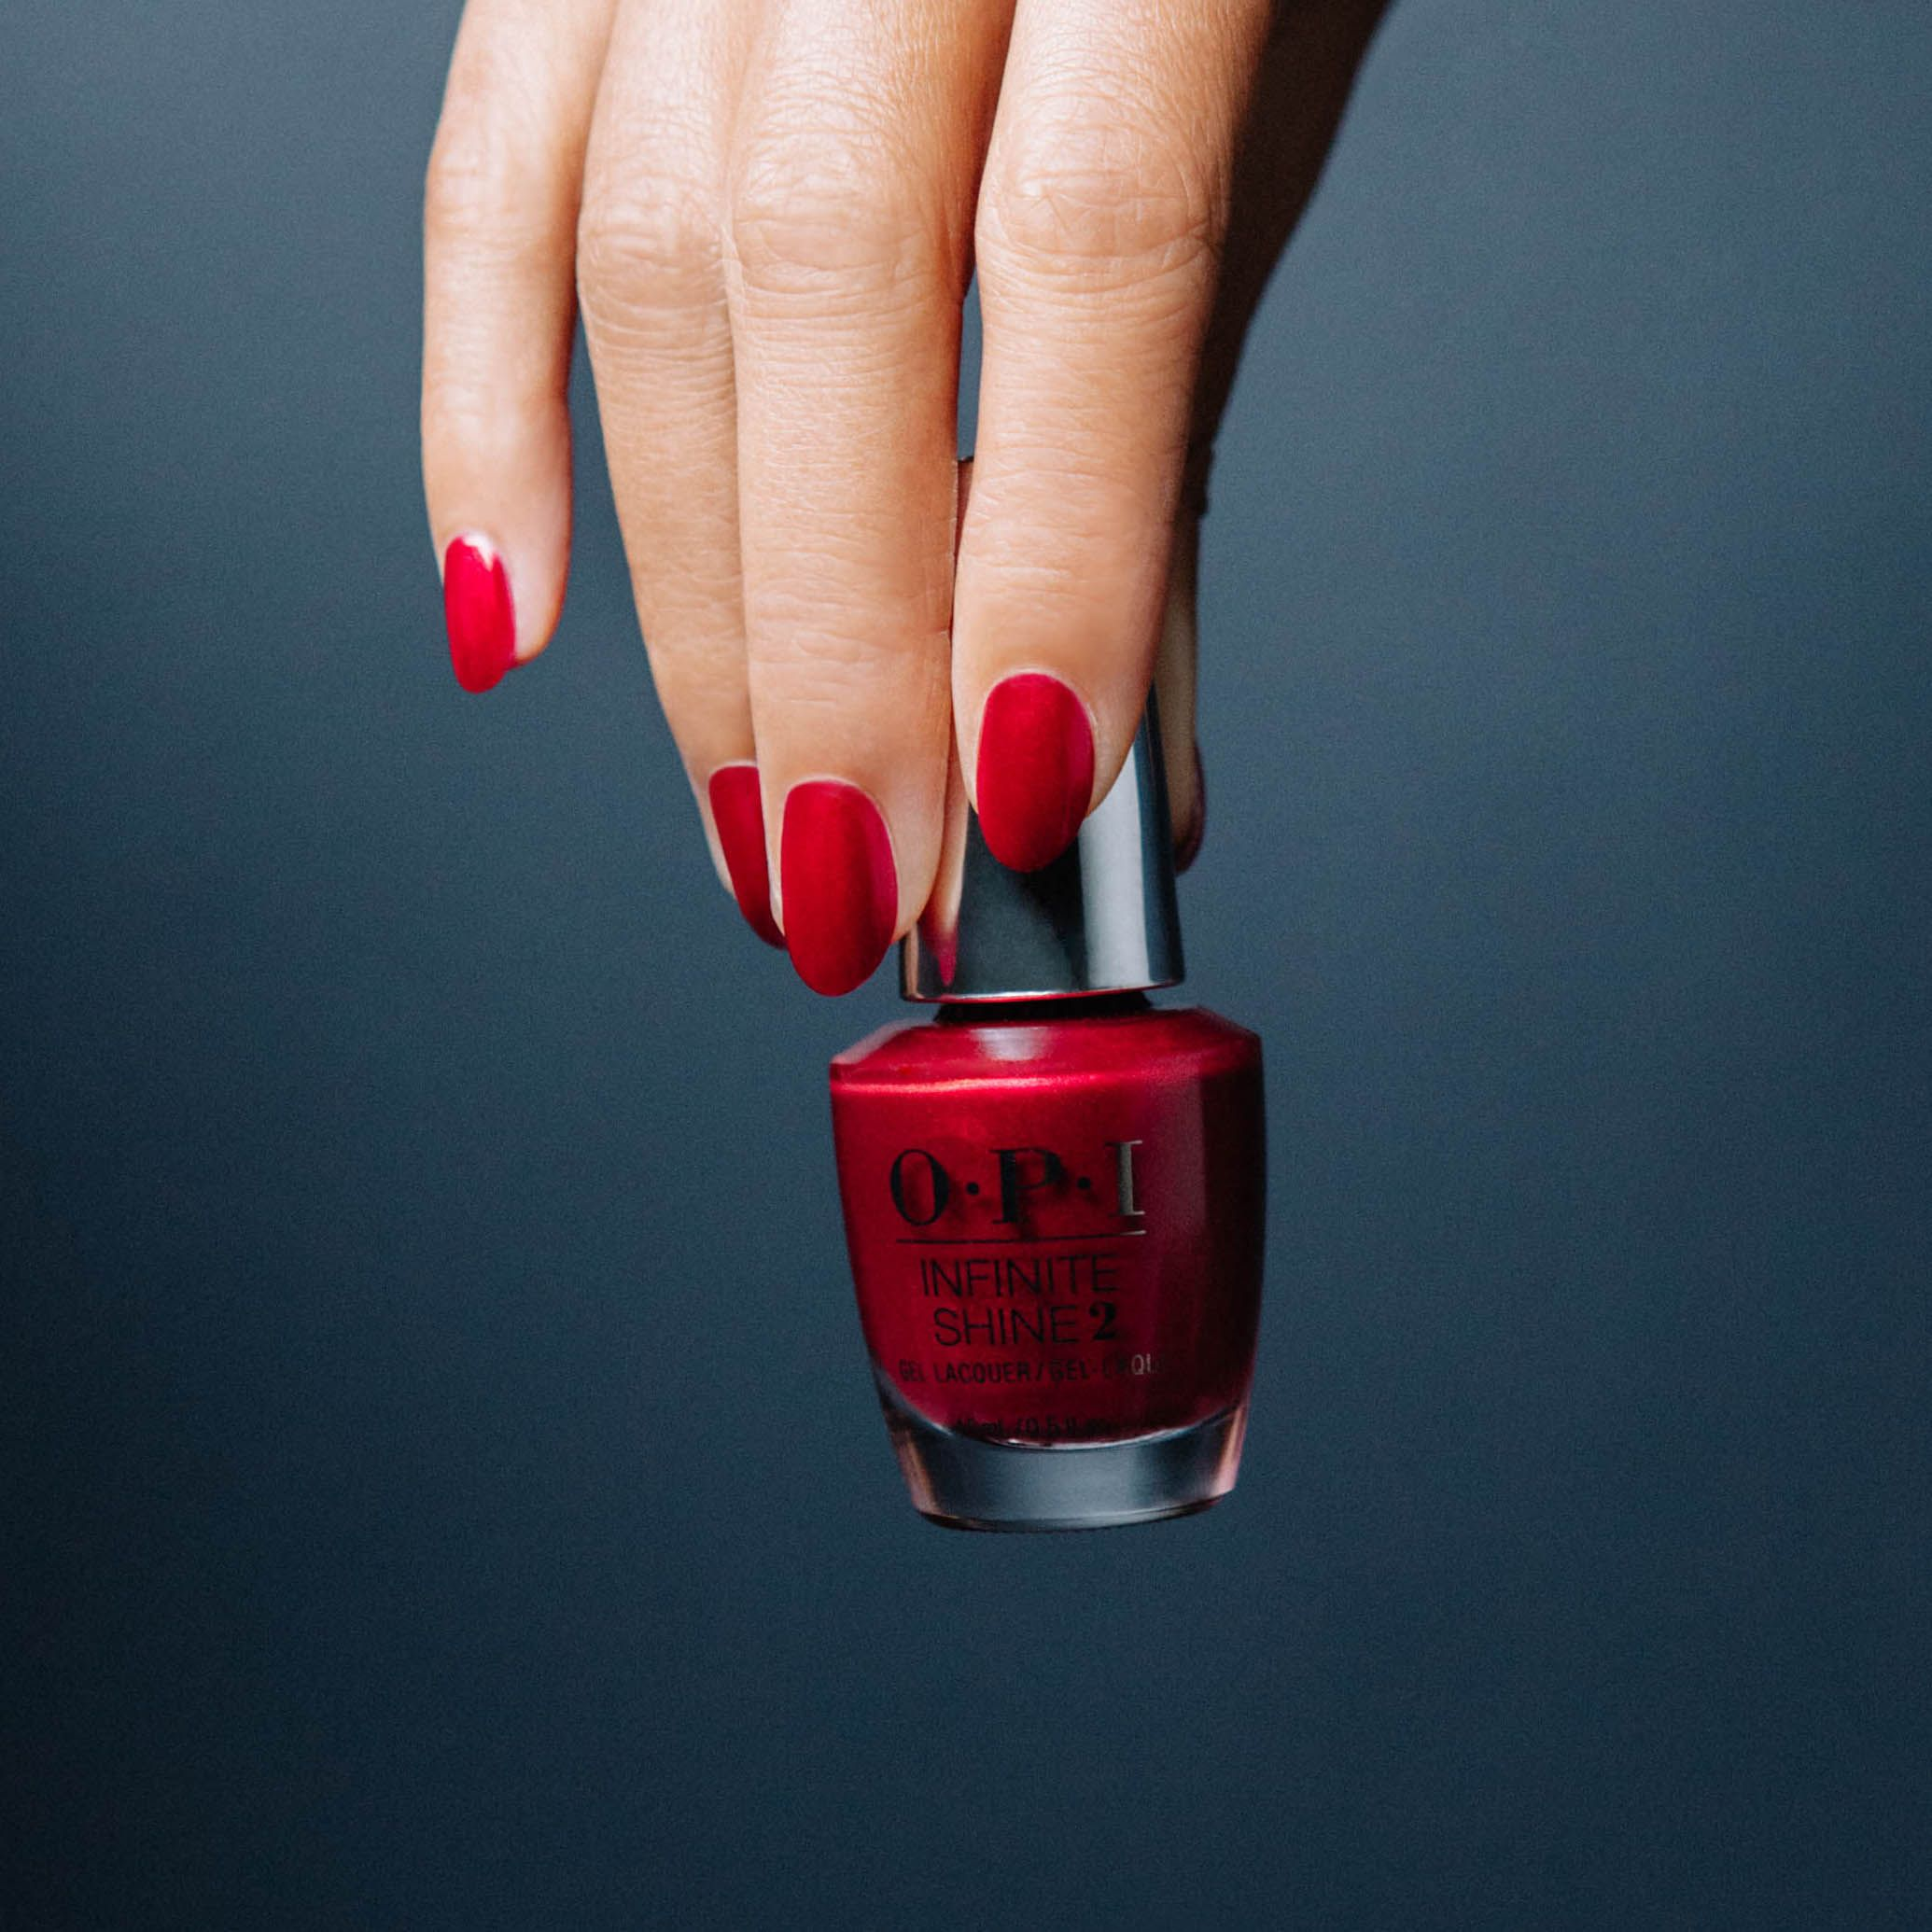 Can You Get Hiv From A Manicure Sending You Holiday Hugs Opi Polish Manicure Holiday Collection